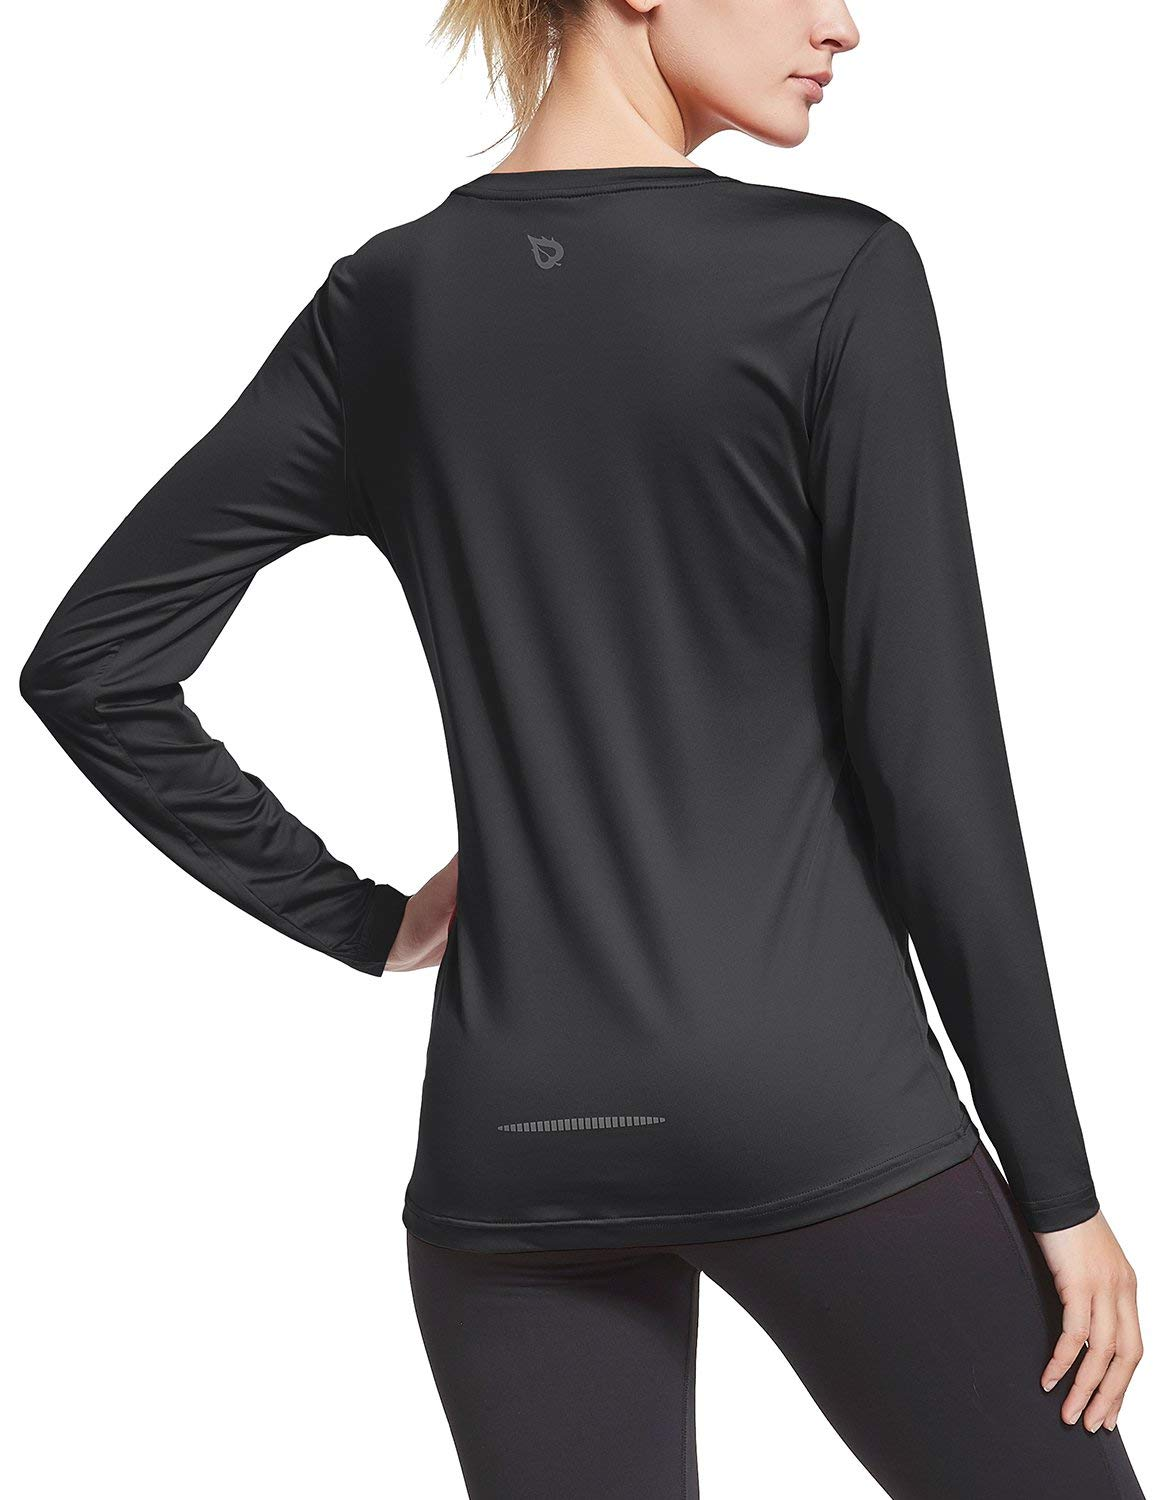 BALEAF Women's Long Sleeve T-Shirt Quick Dry Running Workout Shirts Black Size XL by BALEAF